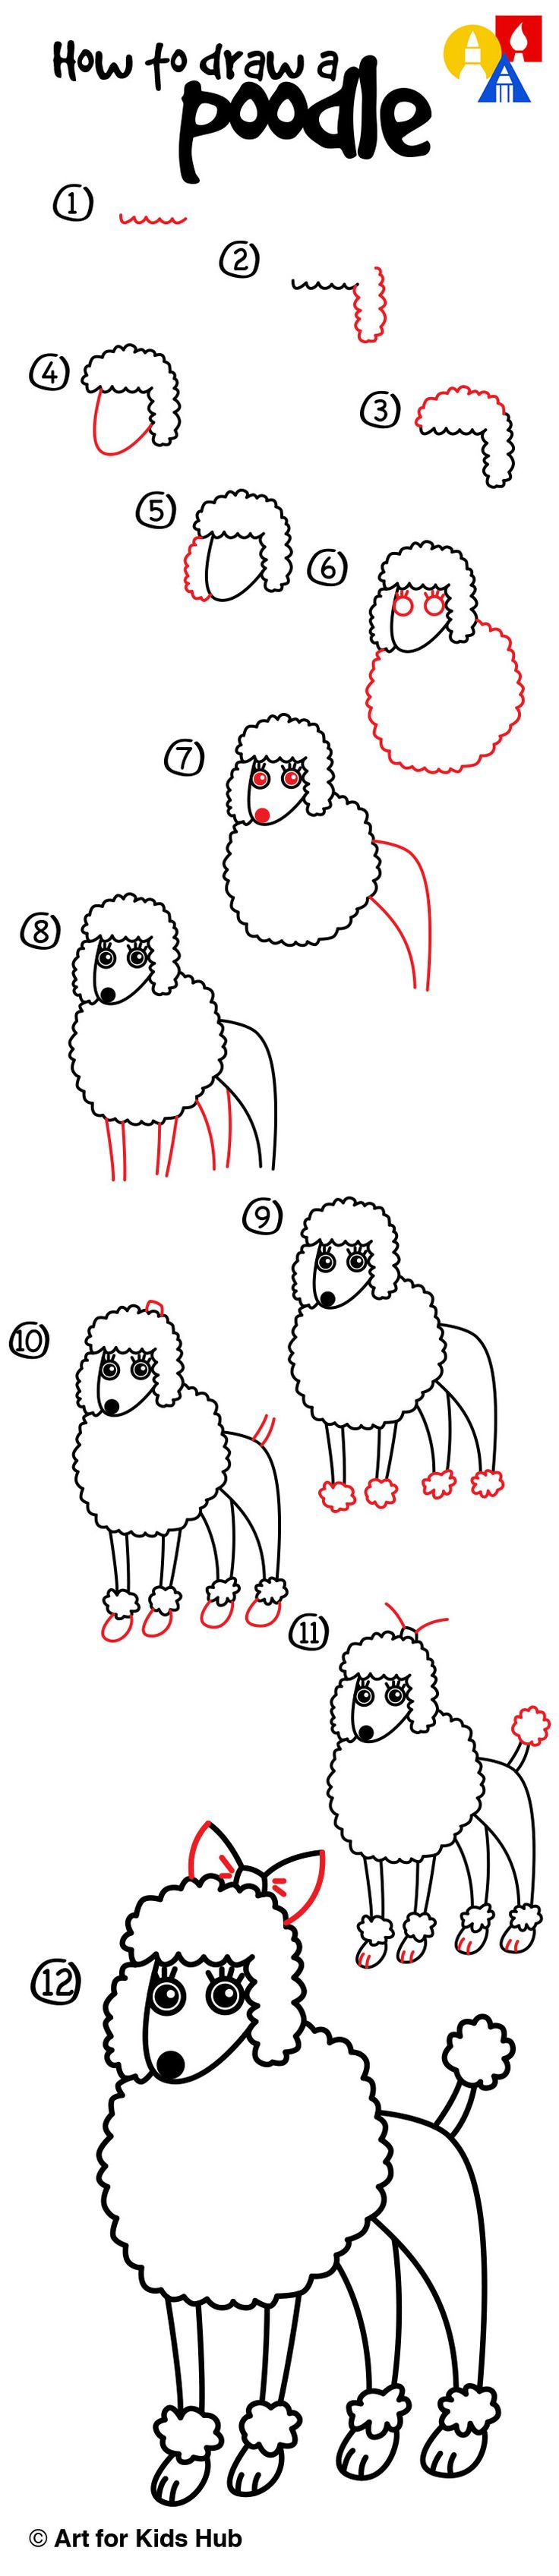 How To Draw A Poodle  Art For Kids Hub